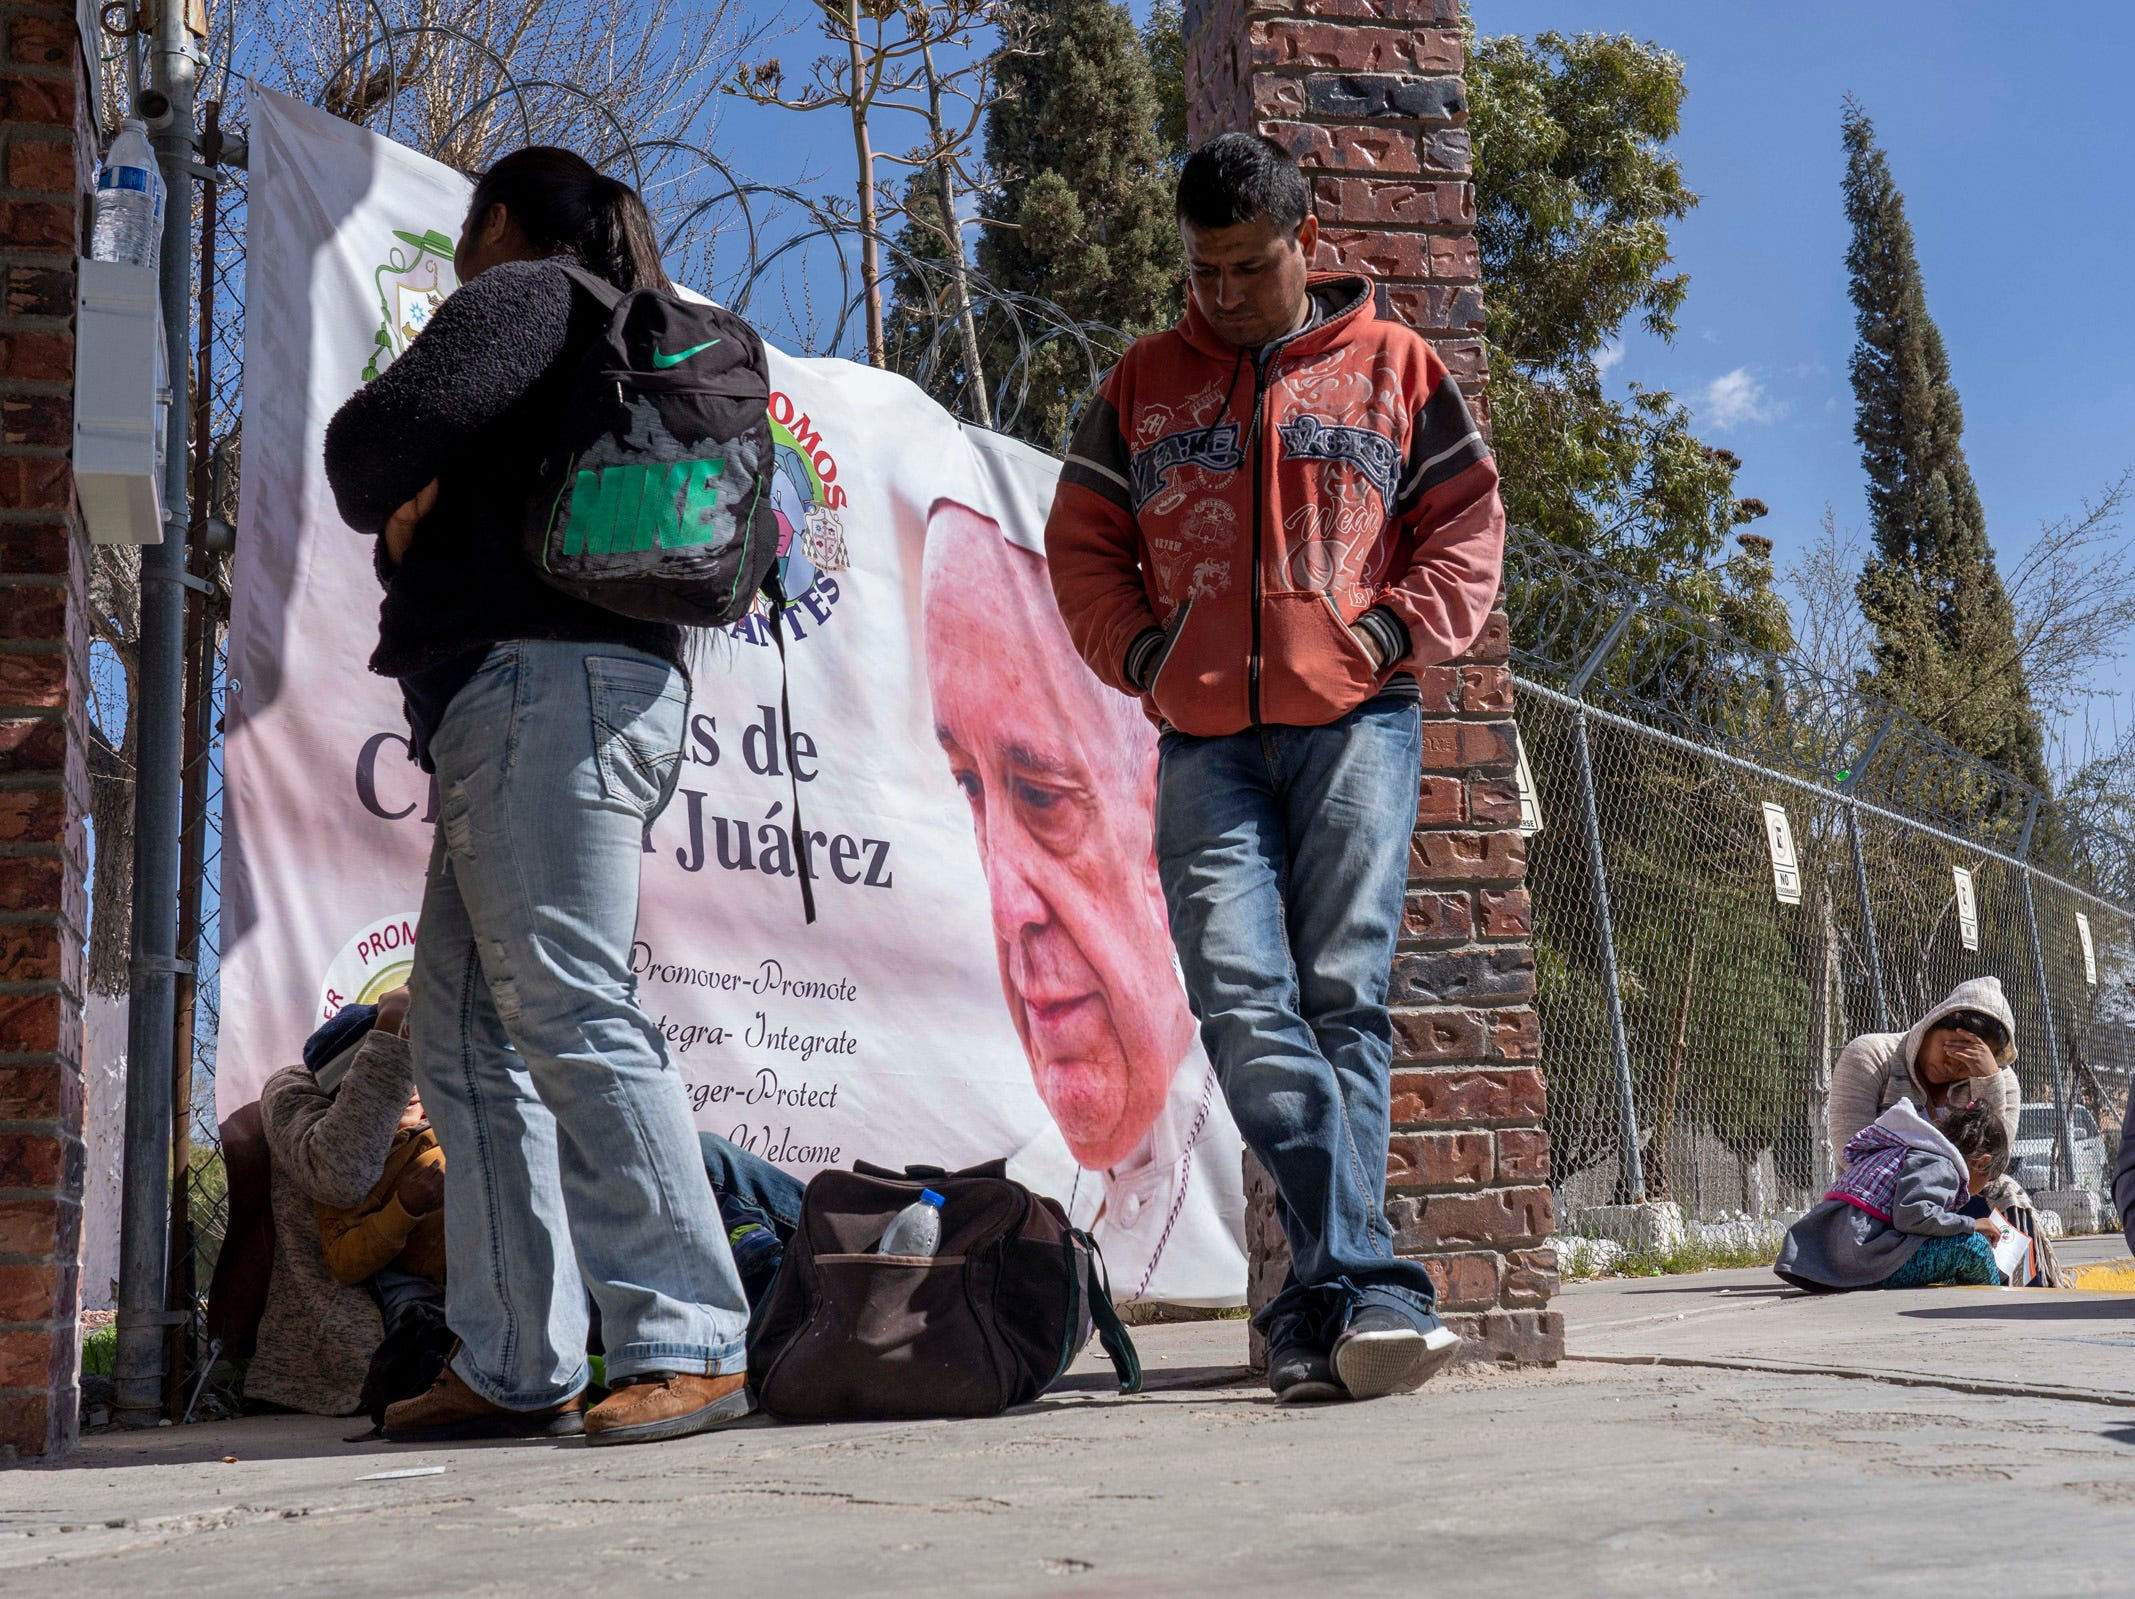 2/11/19 11:23:57 AM -- El Paso, TX, U.S.A  -- On Monday morning, dozen newly-arrived migrants from around Mexico and Latin America to the Casa del Migrante, the Catholic-run shelter for migrants located in Ciudad Juarez.  Photo by Nick Oza, Gannett